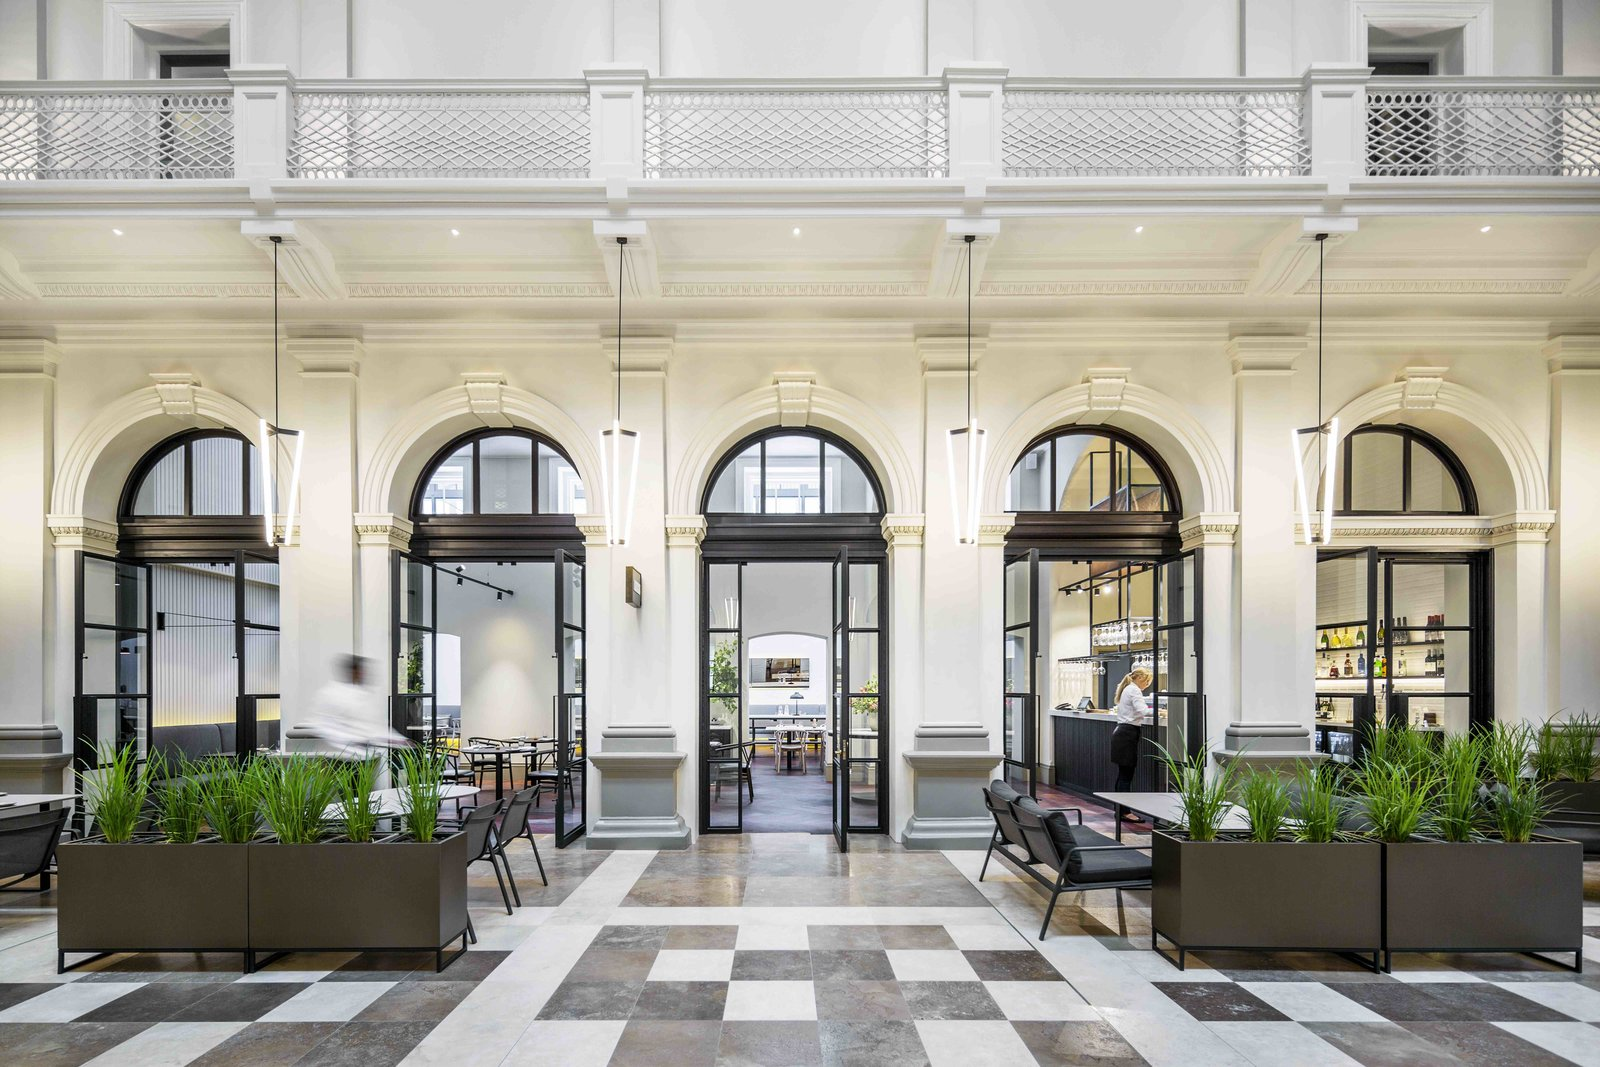 Housed in a restored 140-year-old State Treasury building in the downtown area of Perth, Australia, Como The Treasury's 48 rooms and suites have high ceilings, cornicing, and balconies.  Photo 15 of 24 in 12 Modern Hotels in Historic Buildings Around the World